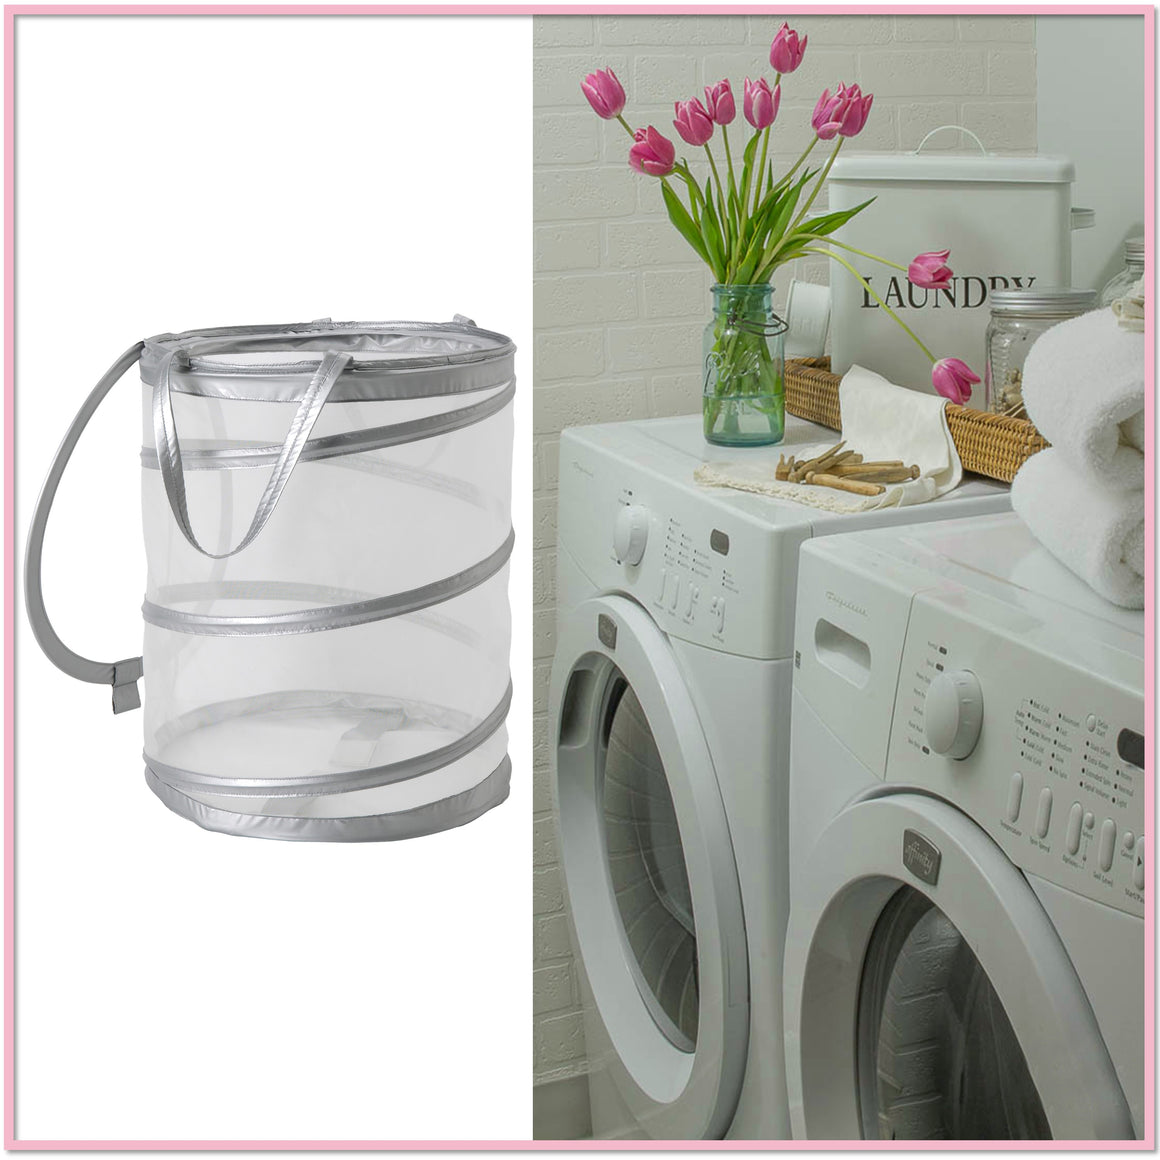 Pop-Up Silver Laundry Basket/Hamper - Boottique